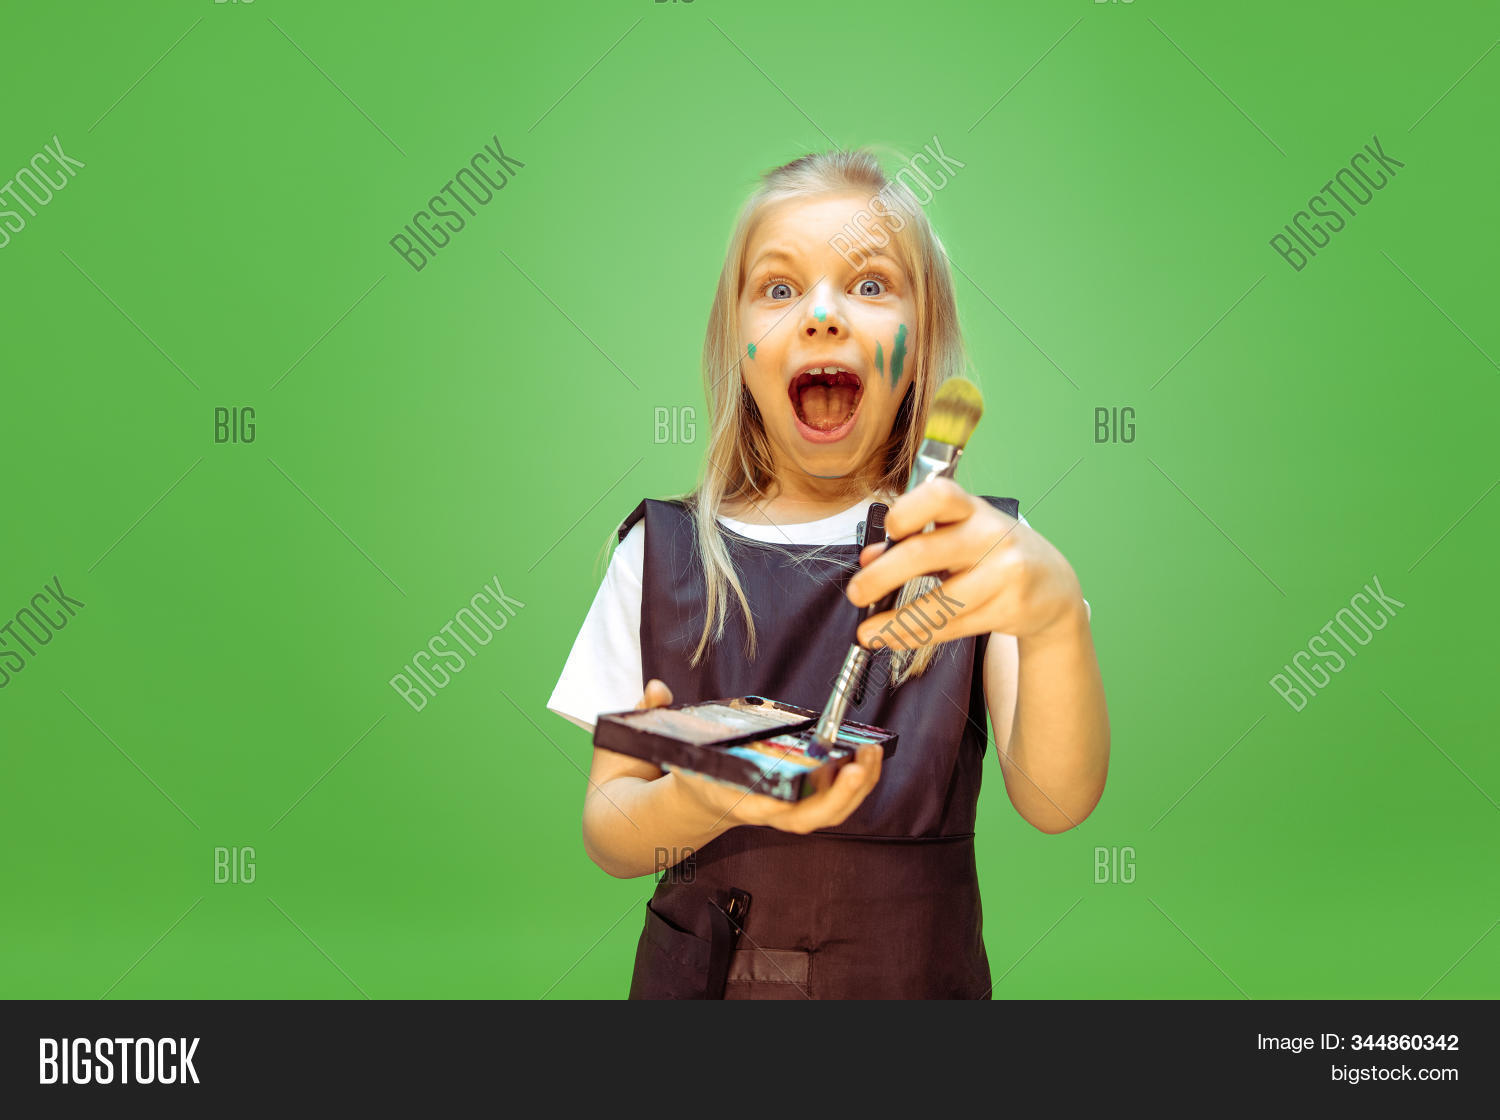 Trying Little Girl Image Photo Free